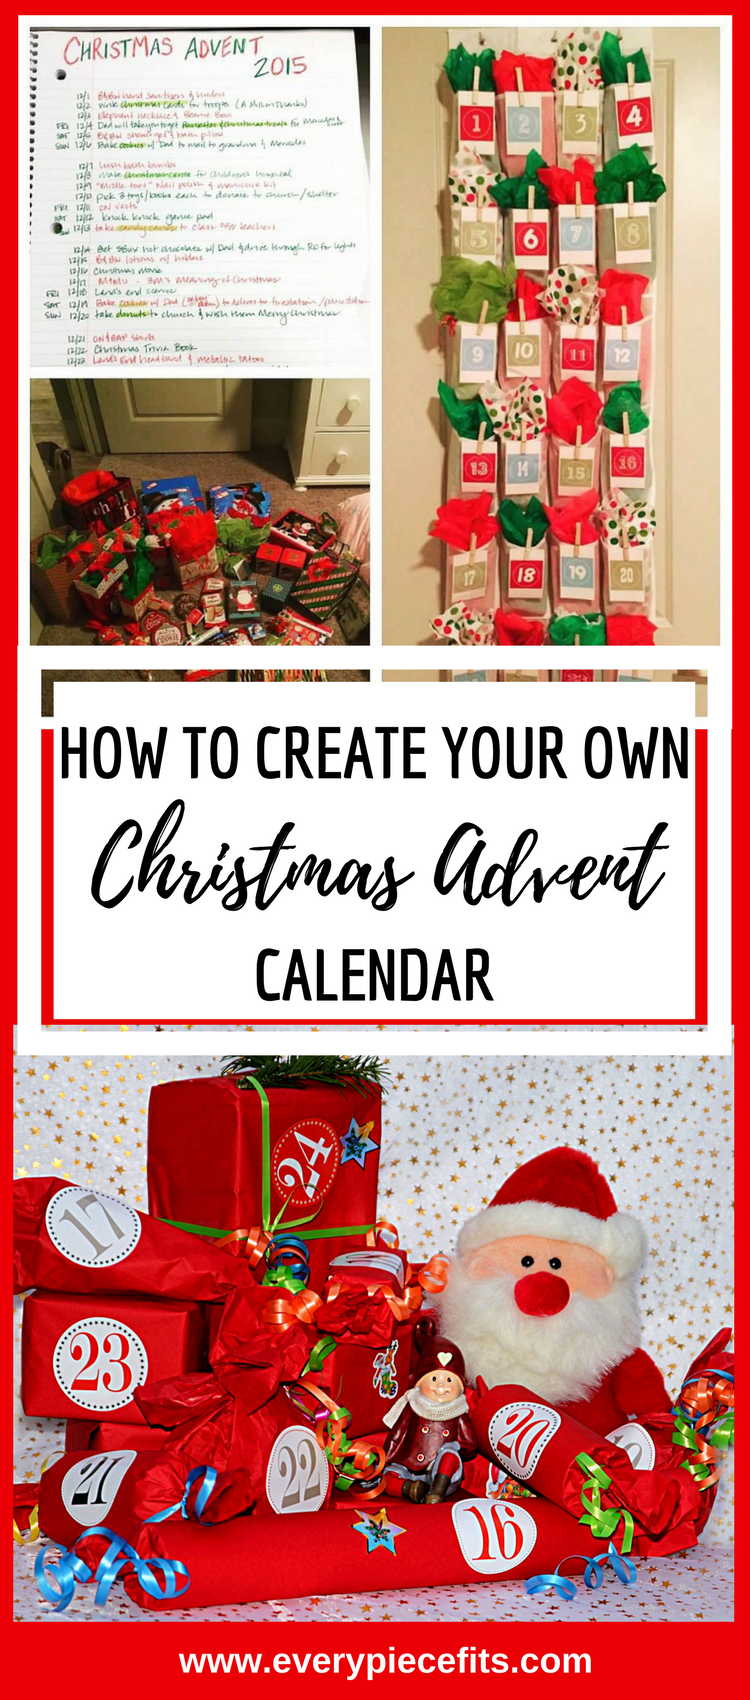 How to Make An Advent Calendar.png